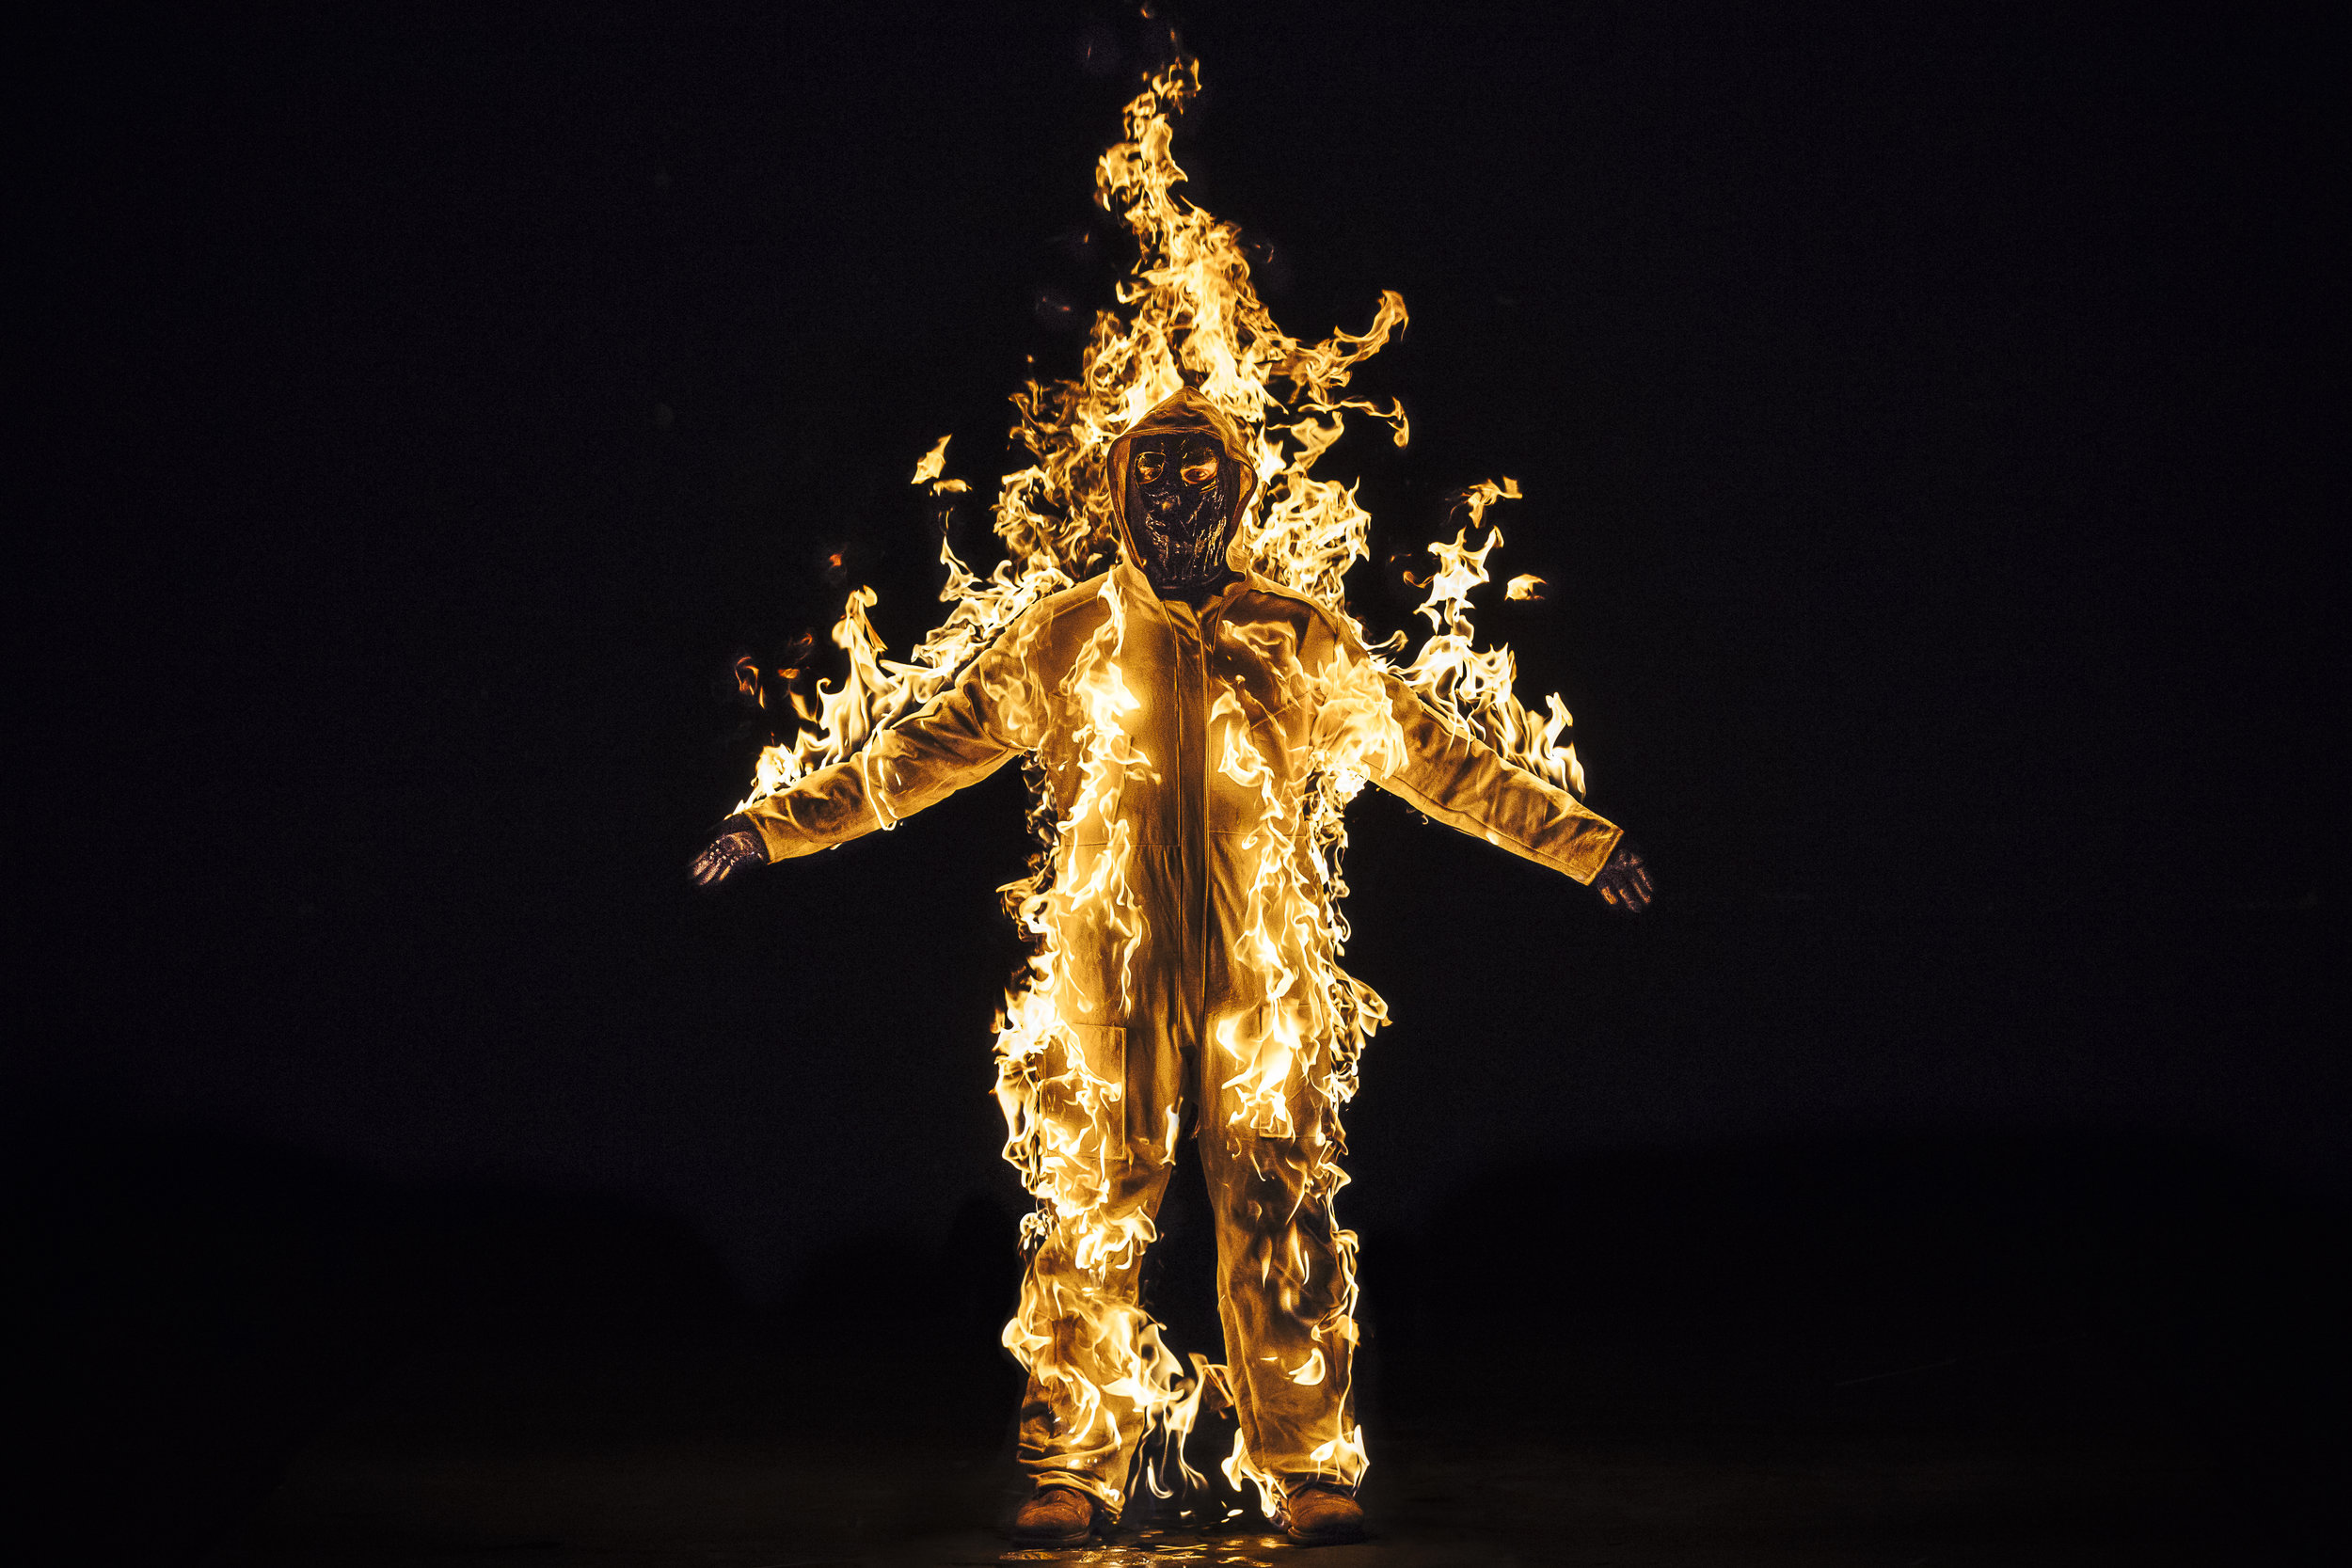 Cassils is lit on fire during their performance  Inextinguishable Fire , performed on Nov 8, 2015 at the National Theatre in London as part of SPILL Festival of Performance. Photo credit: Cassils with Guido Mencari © Cassils 2015 Image courtesy of the artist and Ronald Feldman Fine Arts